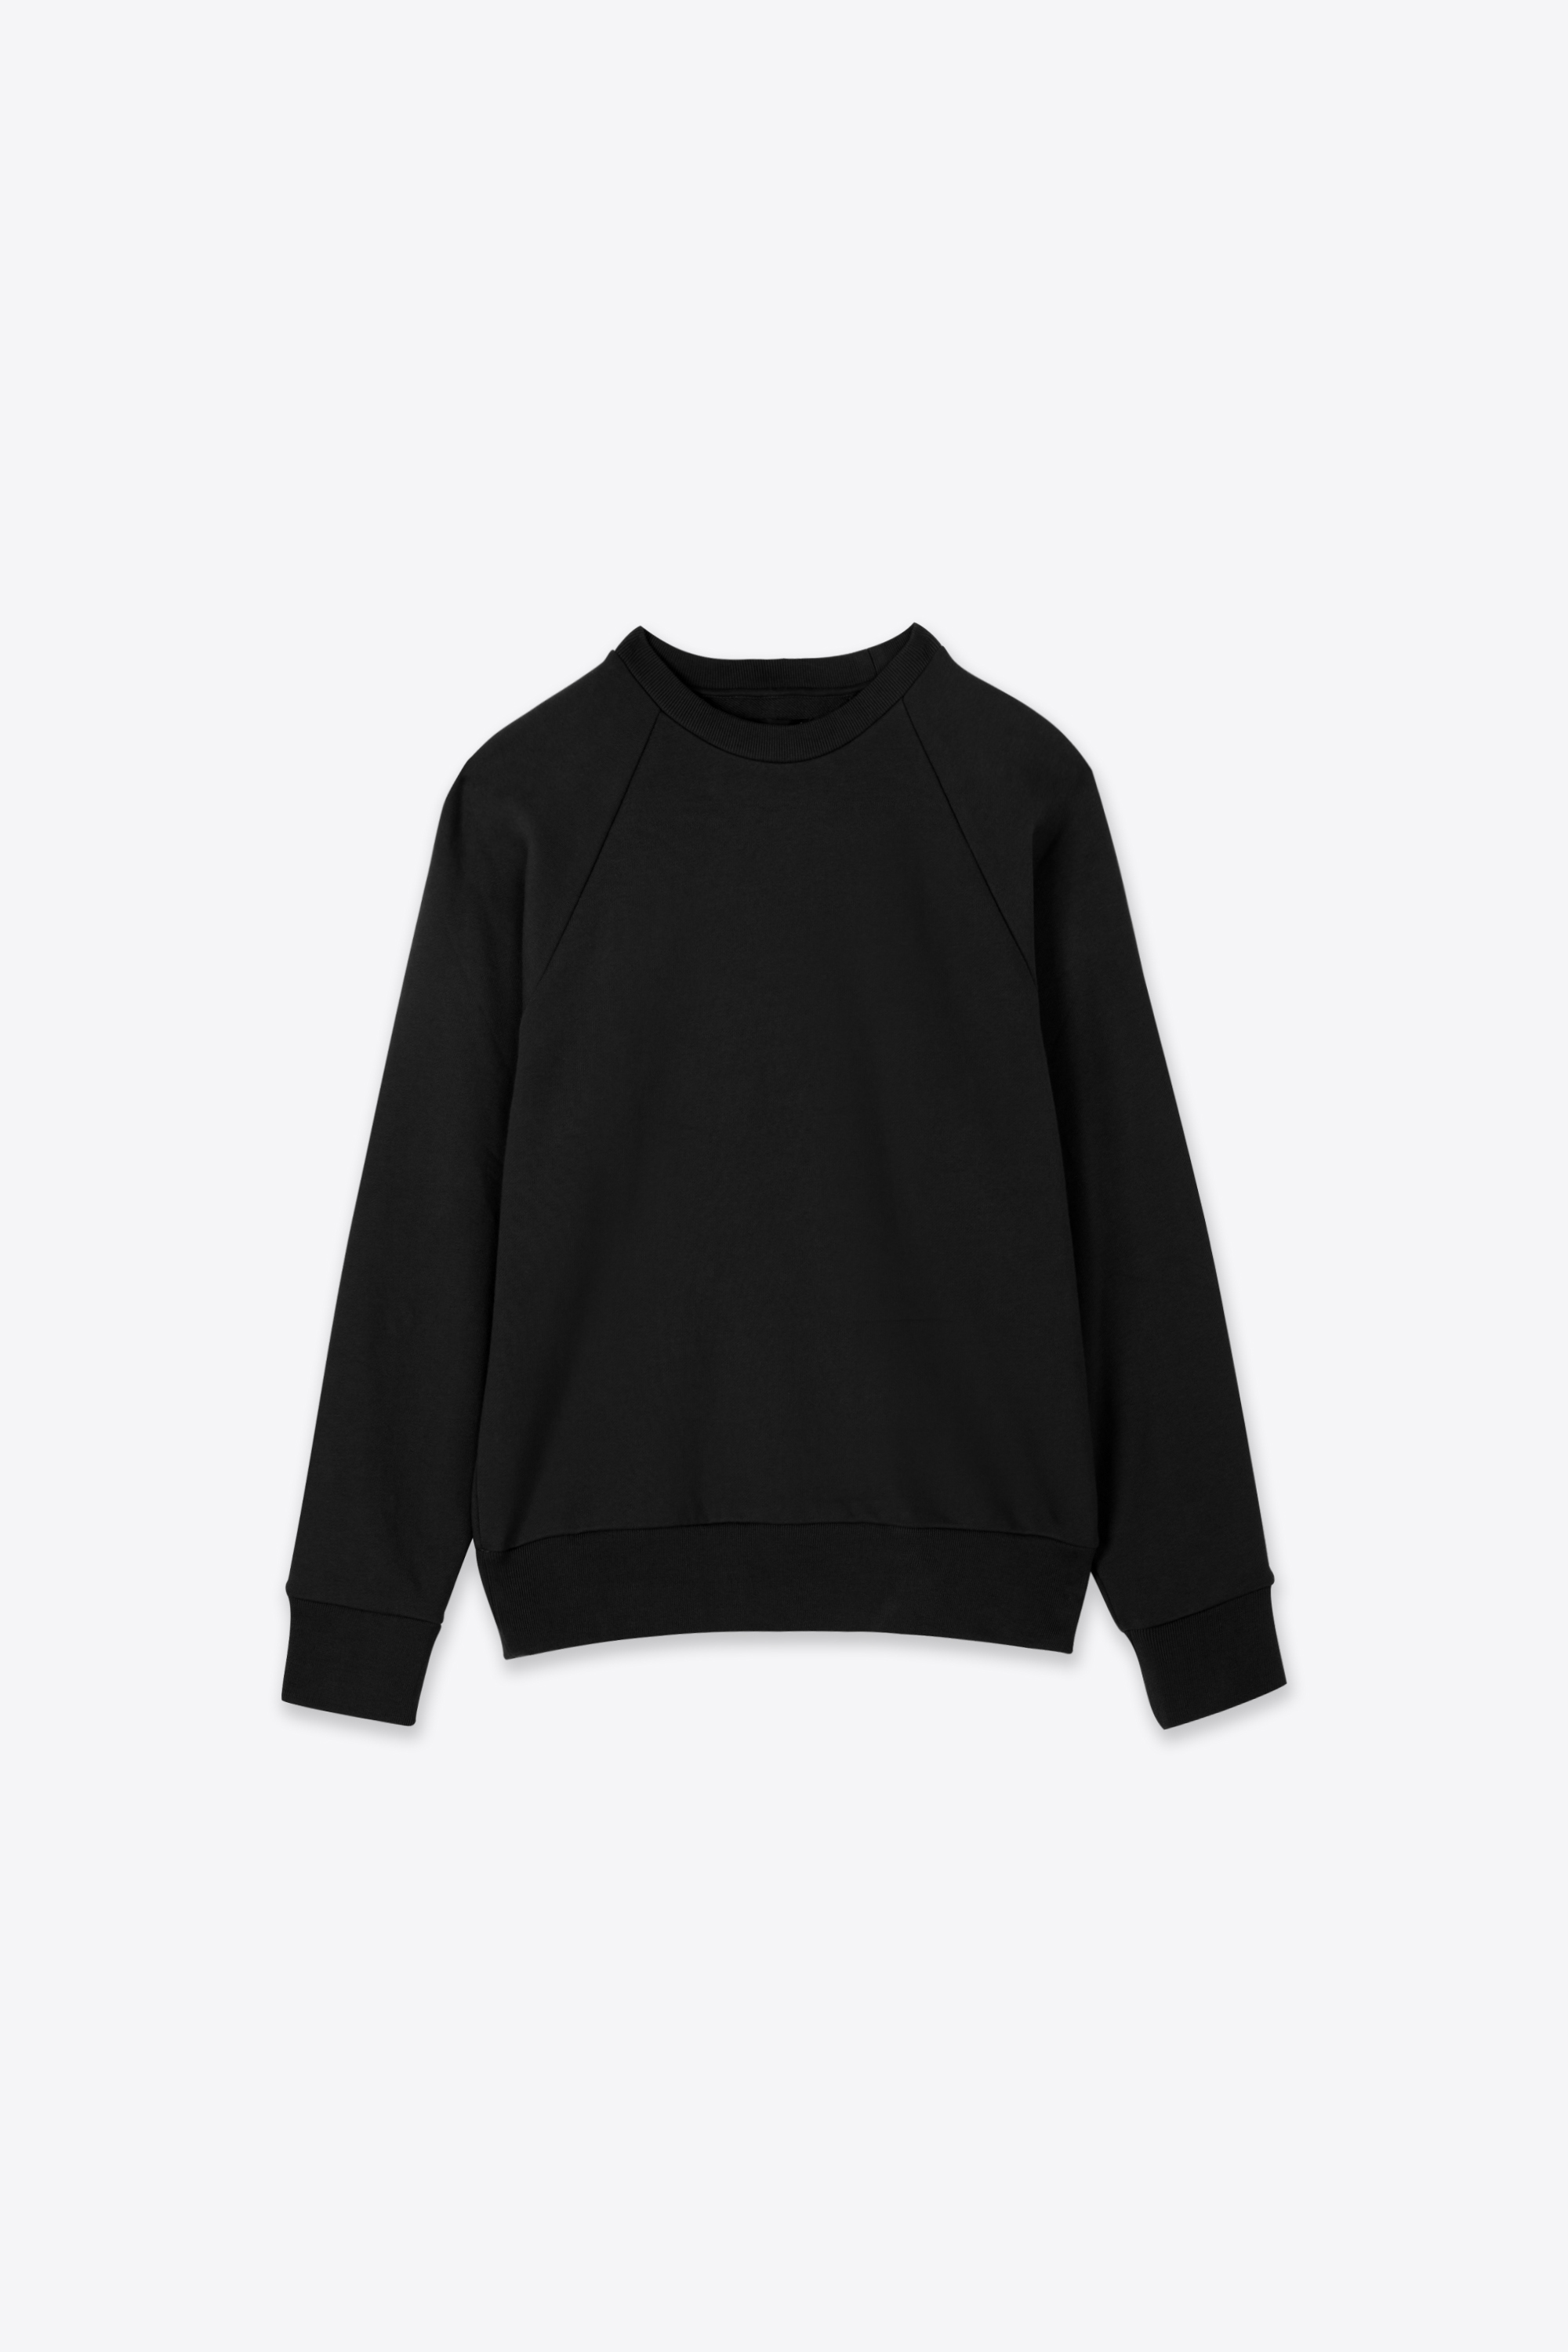 Sweatshirt 2474 Black 5